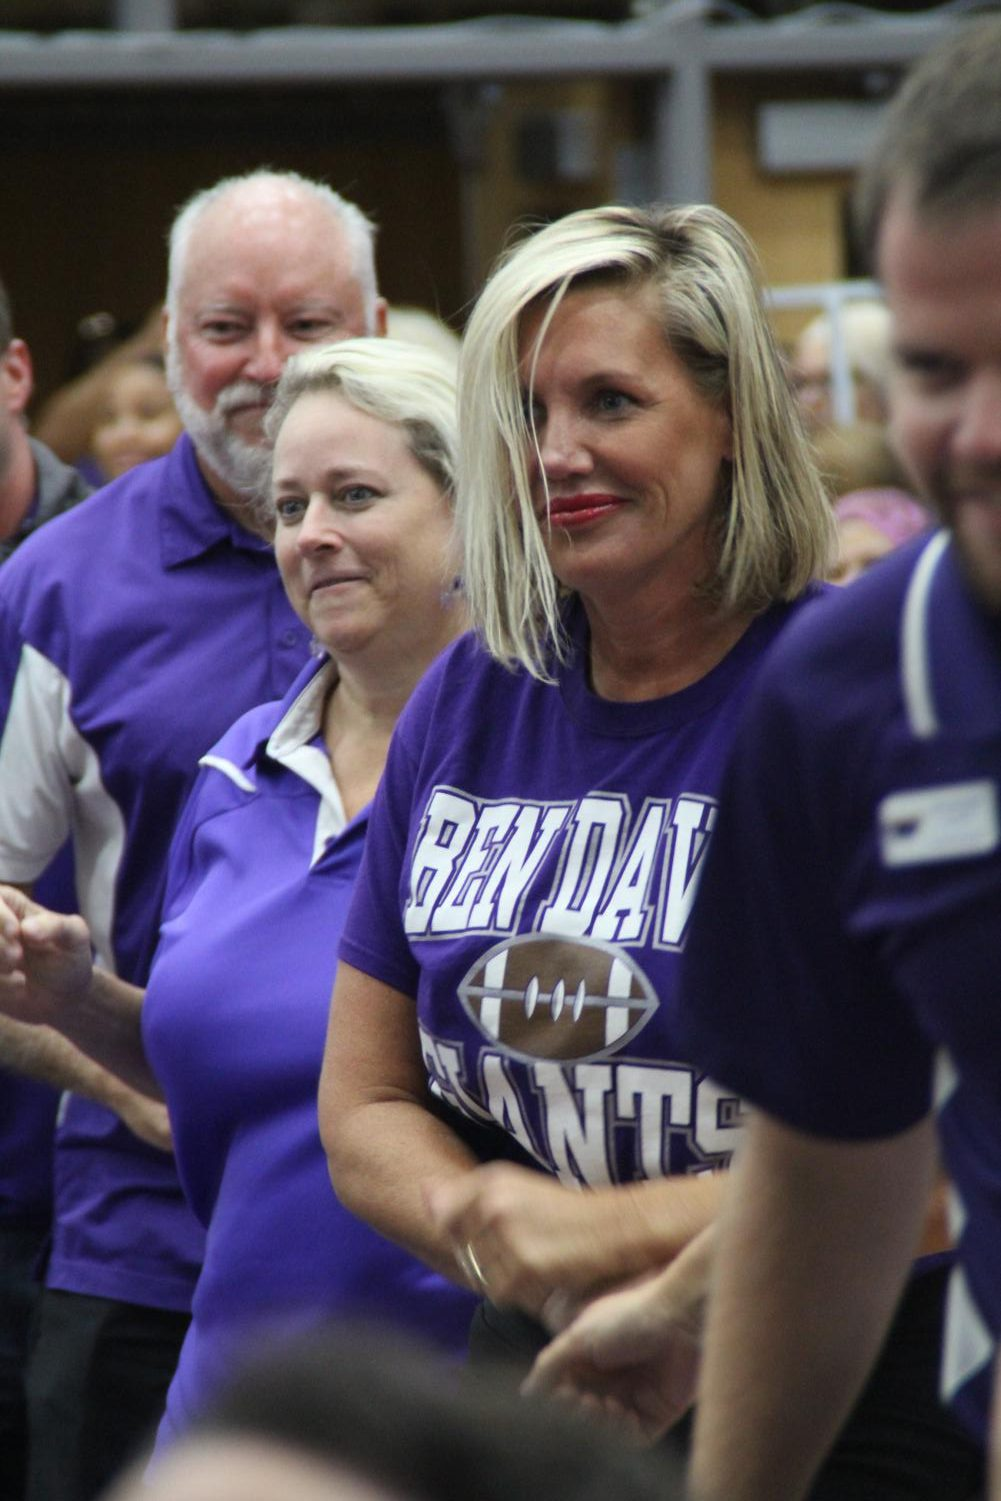 Principal Sandra Squire takes part in the opening day festivities in the main gym. Squire is entering her seventh year as principal at Ben Davis.